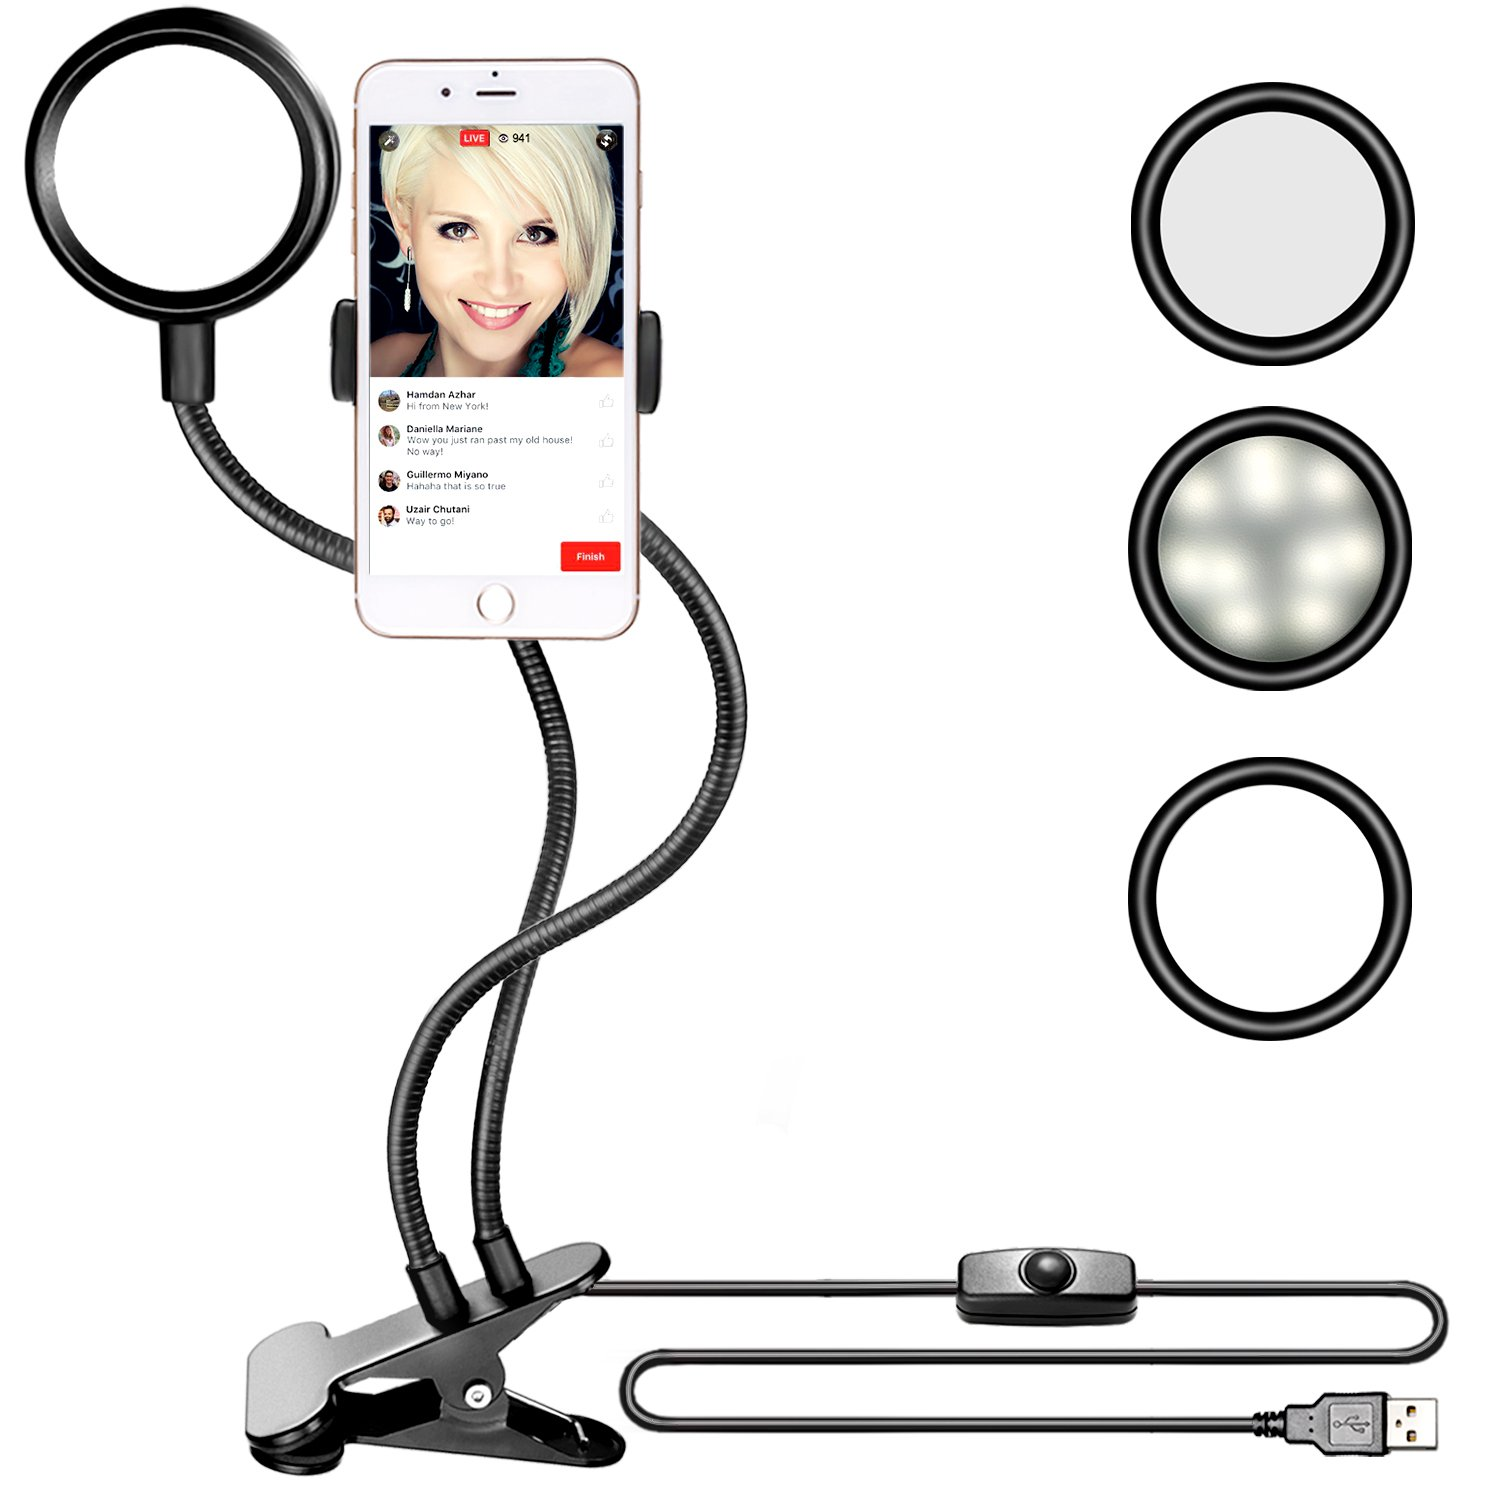 Neewer Clamp-on LED Selfie Ring Light with Cell Phone Holder for Live Stream, 3-Level Brightness, 360 Degree Rotating Flexible Long Arms Gooseneck Mount for YouTude,Facebook,iPhone8/7/6S,Samsung,HTC 10091940